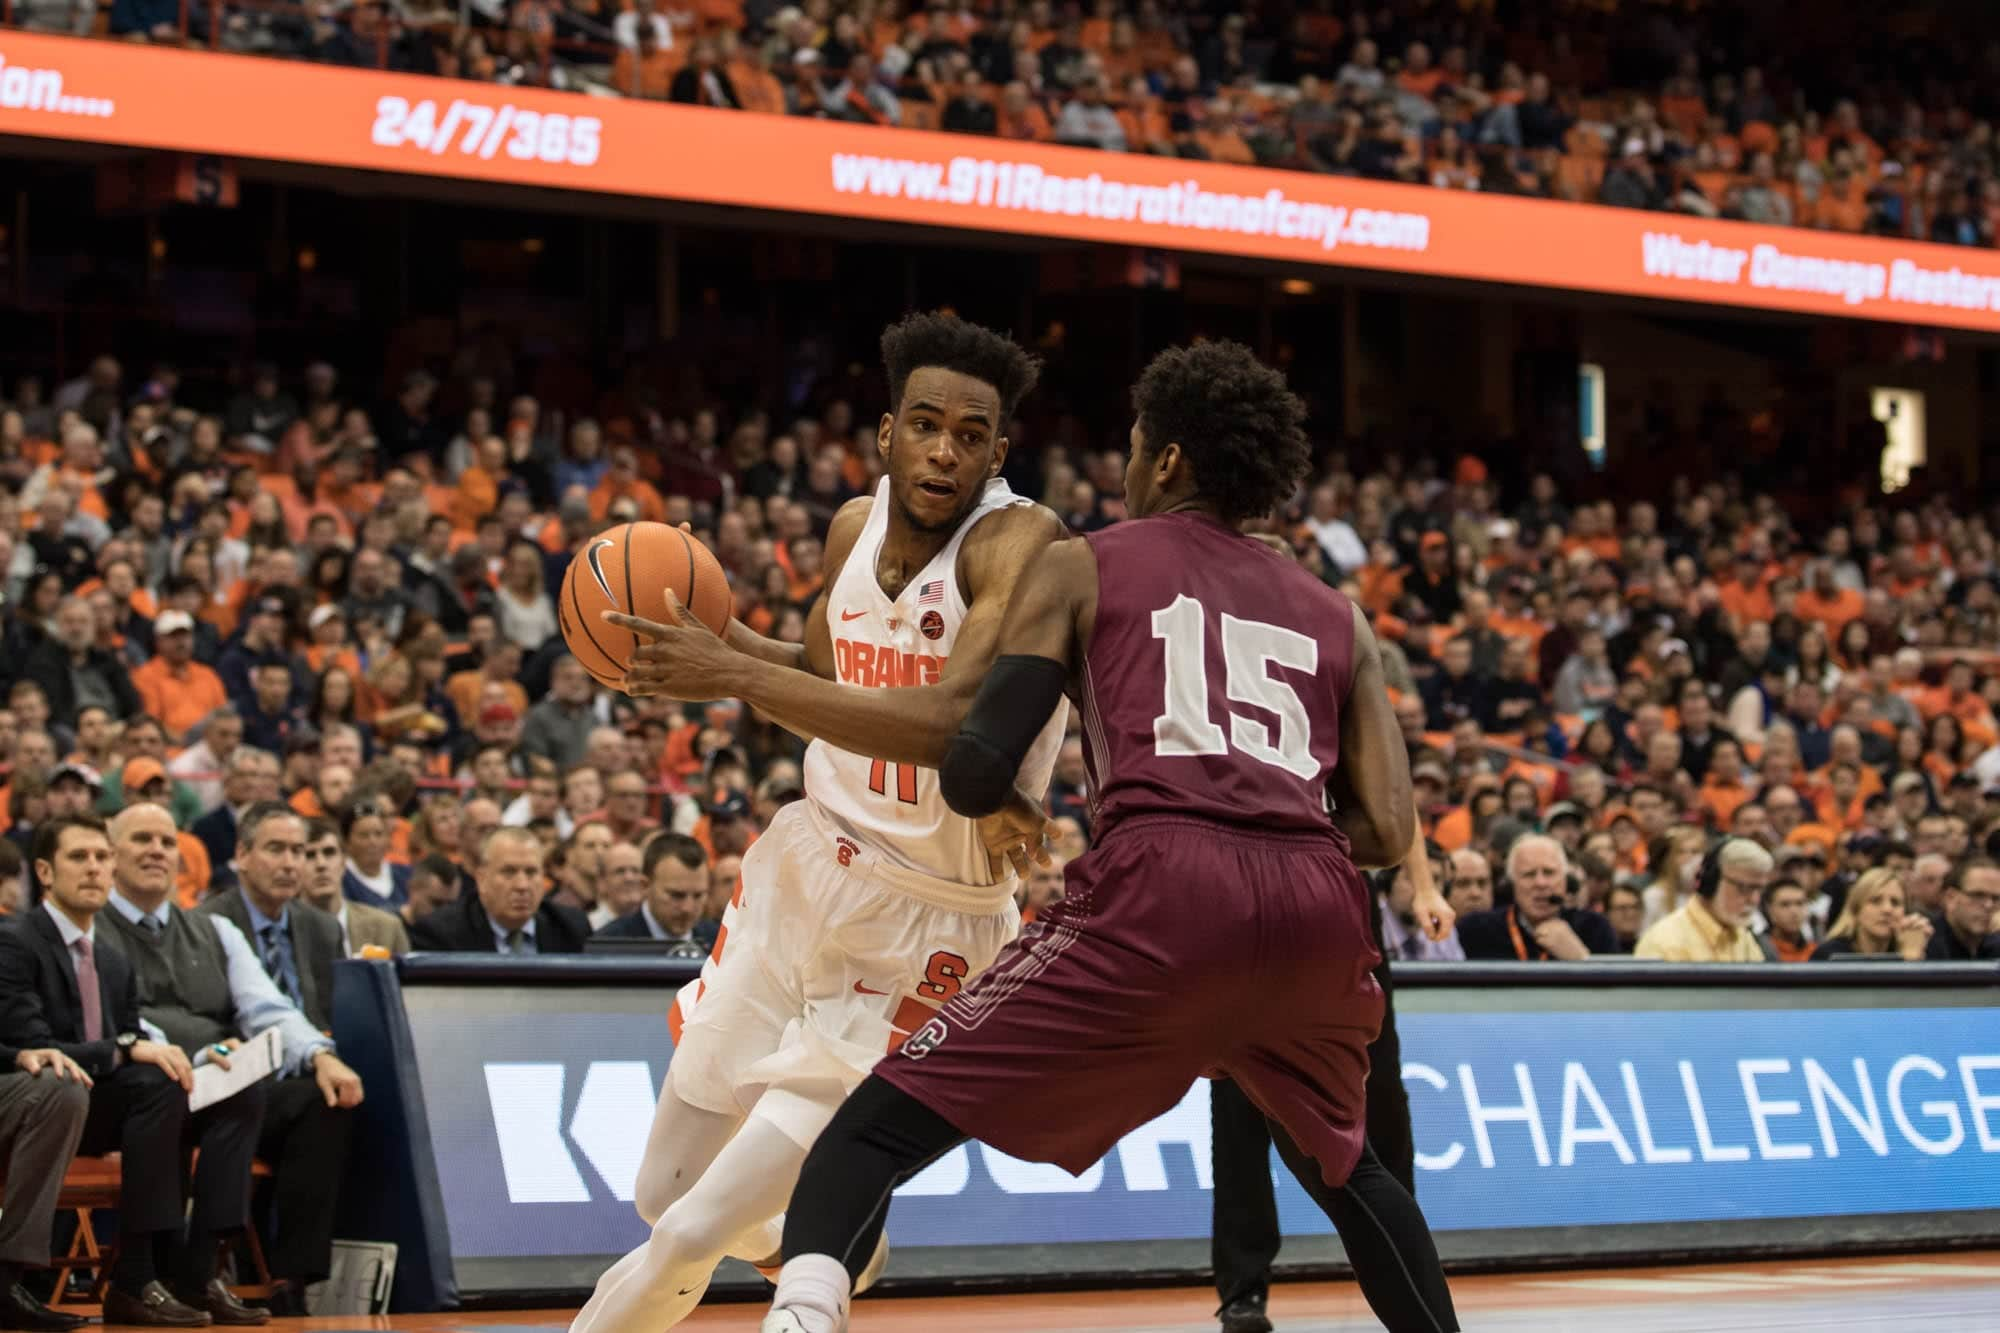 SU Men's basketball against Colgate